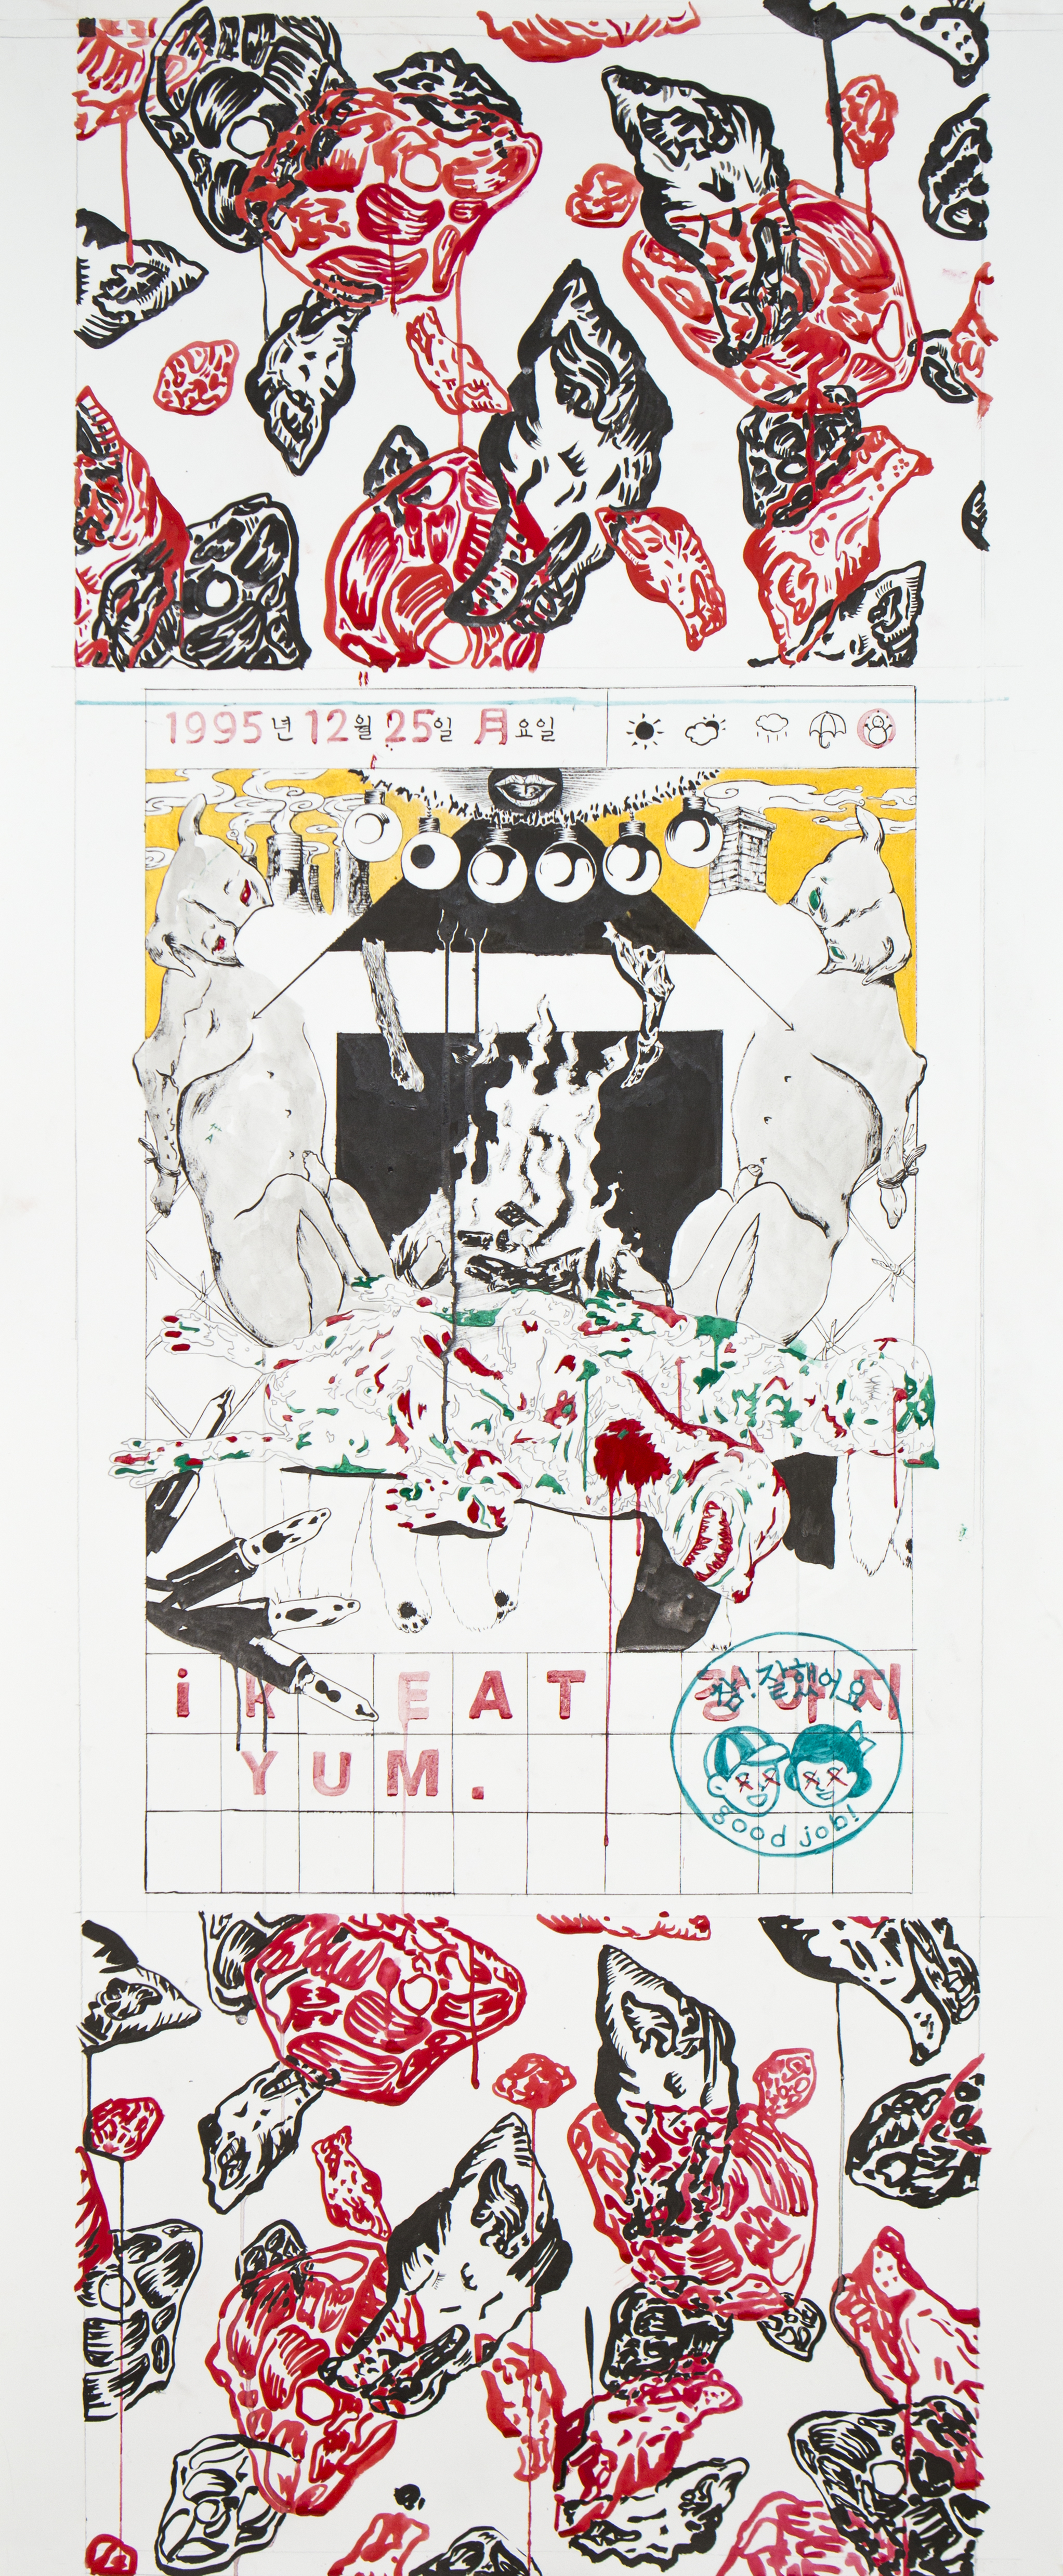 1995, 12, 25 Black ink and pigment on paper 154x62.5cm,2018